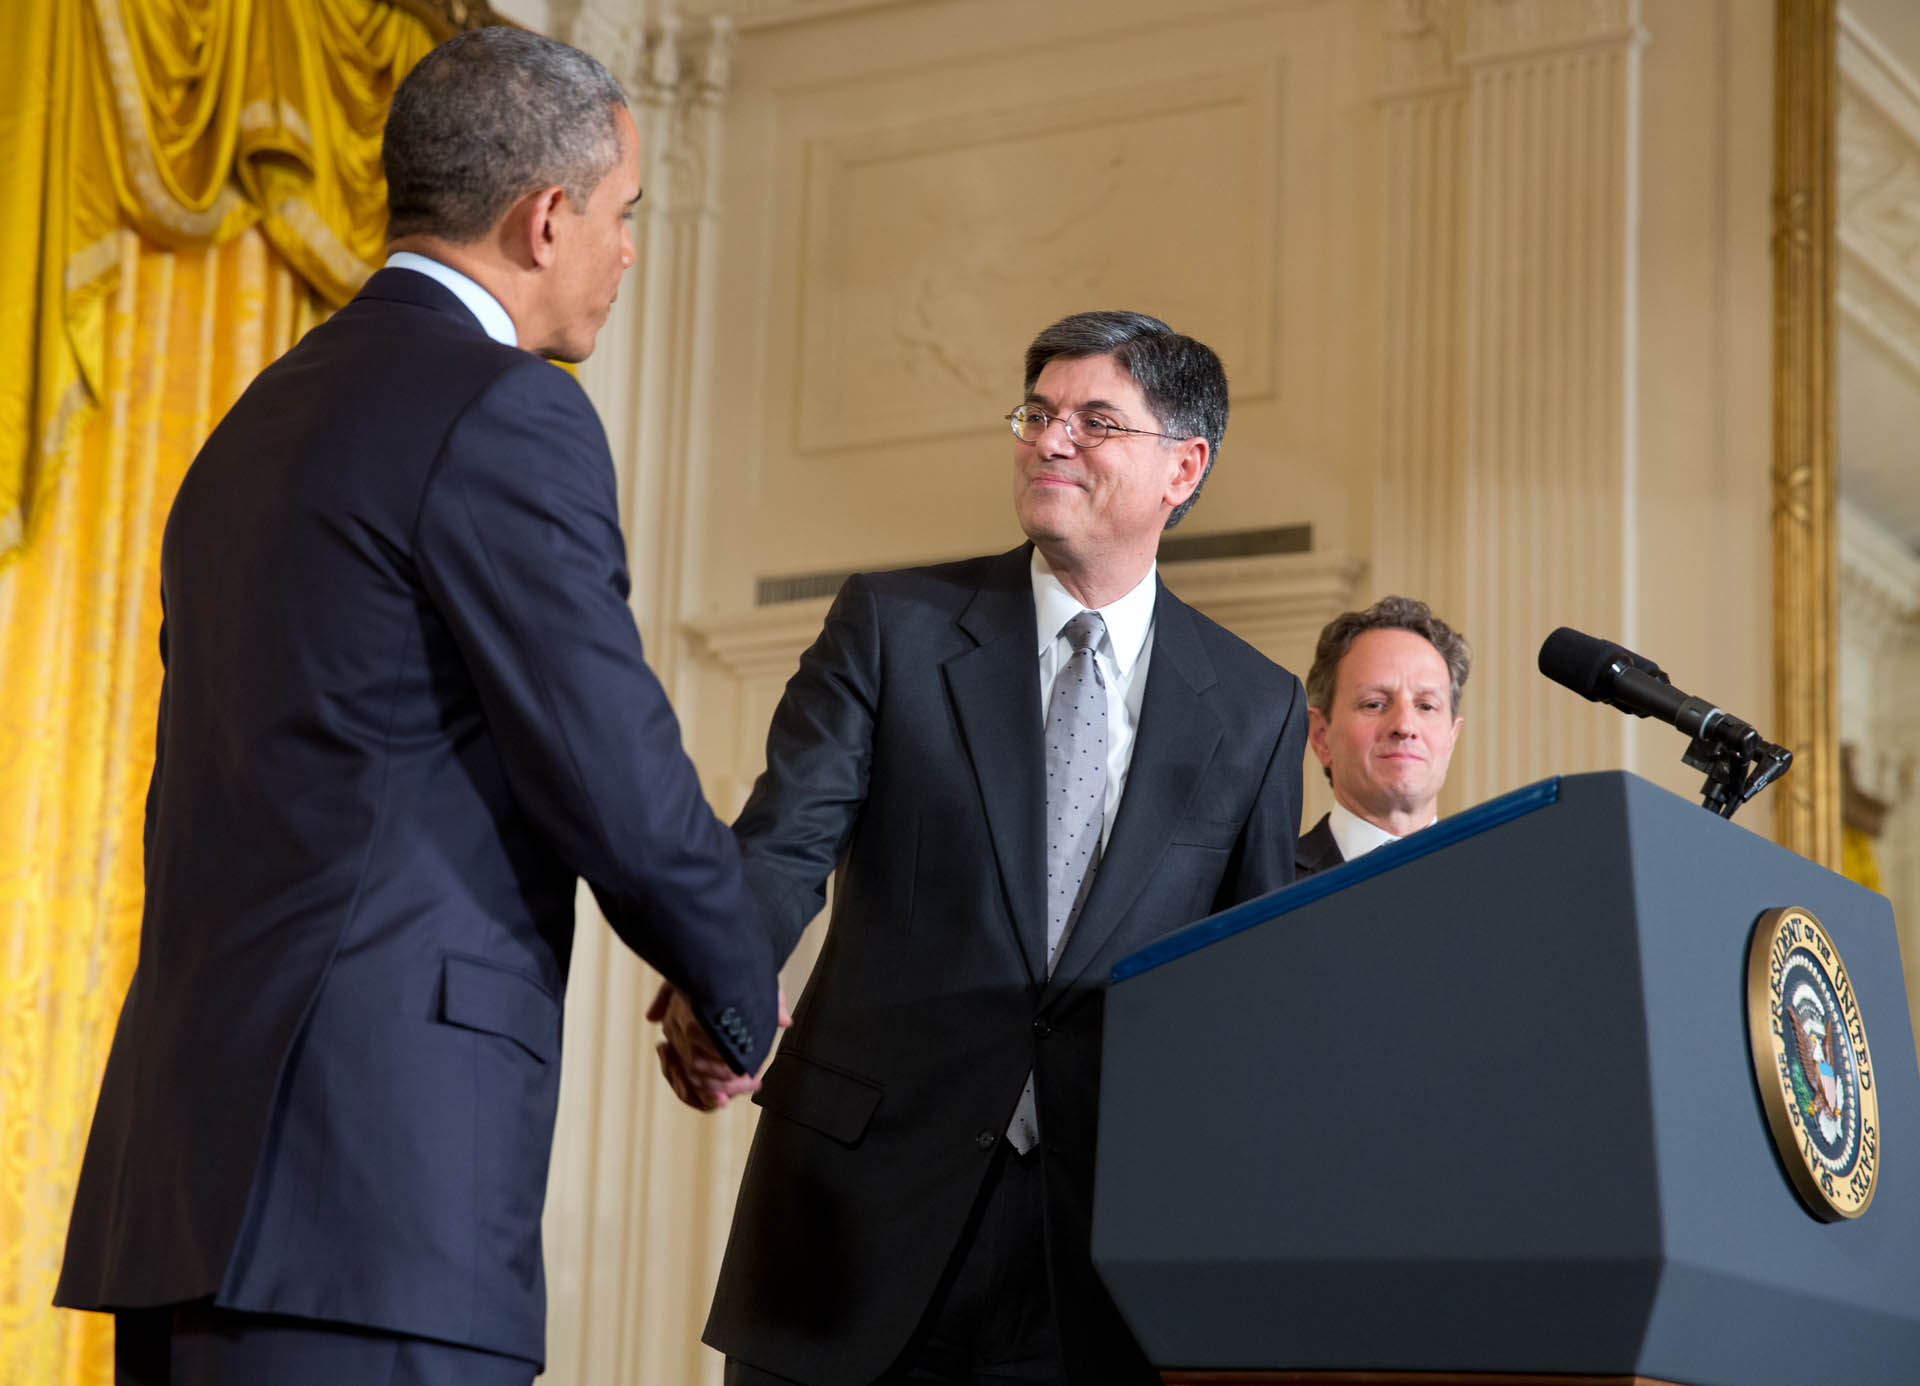 President Barack Obama announces Chief of Staff Jack Lew is his nominee for Treasury Secretary (January 10, 2013)